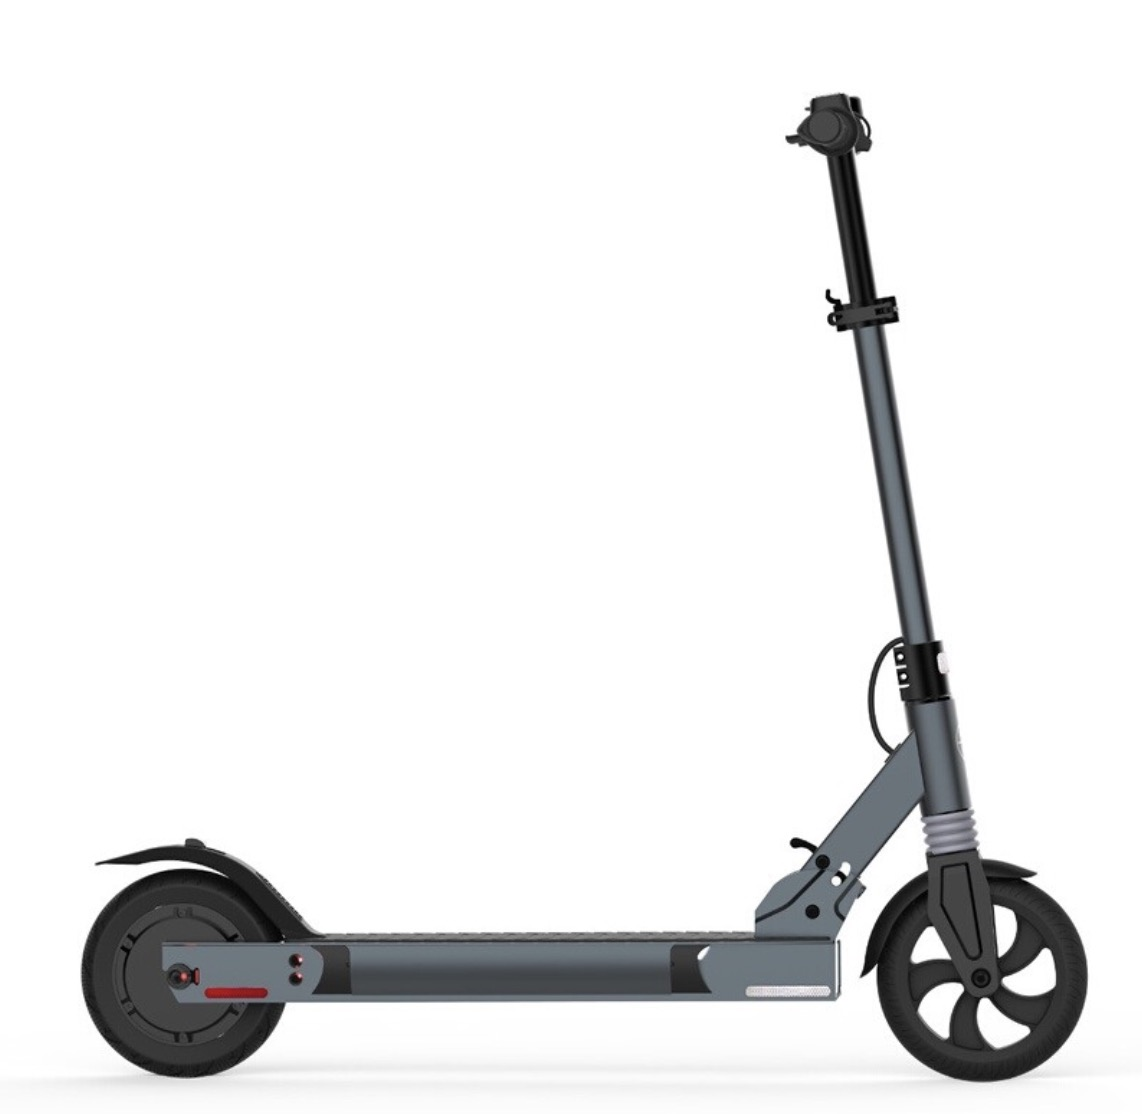 Code promo Darty : Trottinette électrique Revoe Arrow 300W à 199€